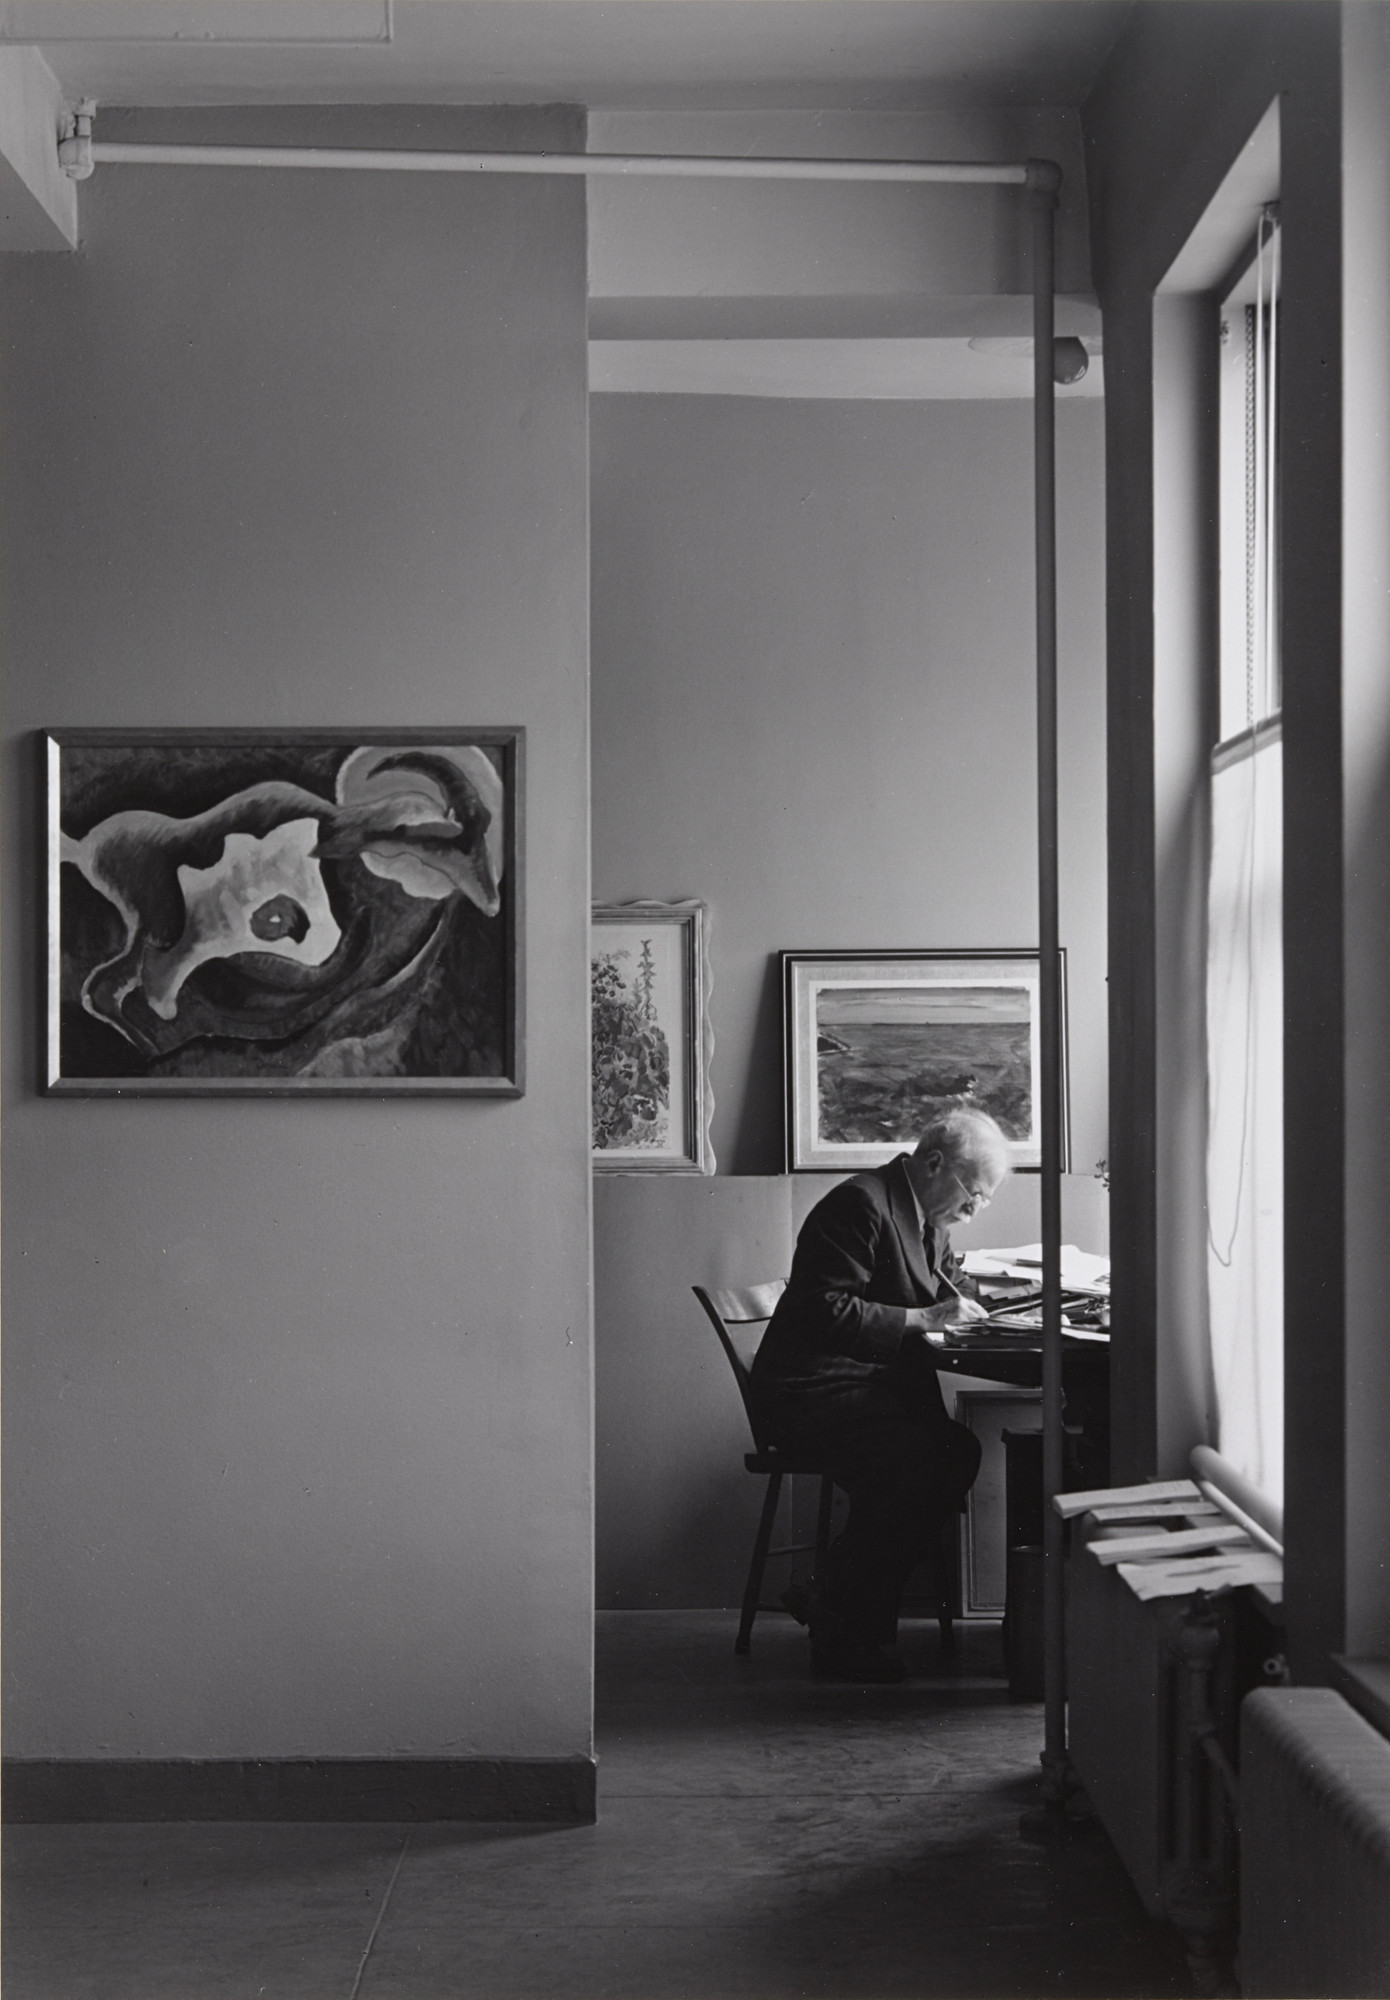 Ansel Adams. Alfred Stieglitz at his desk at An American Place. 1938